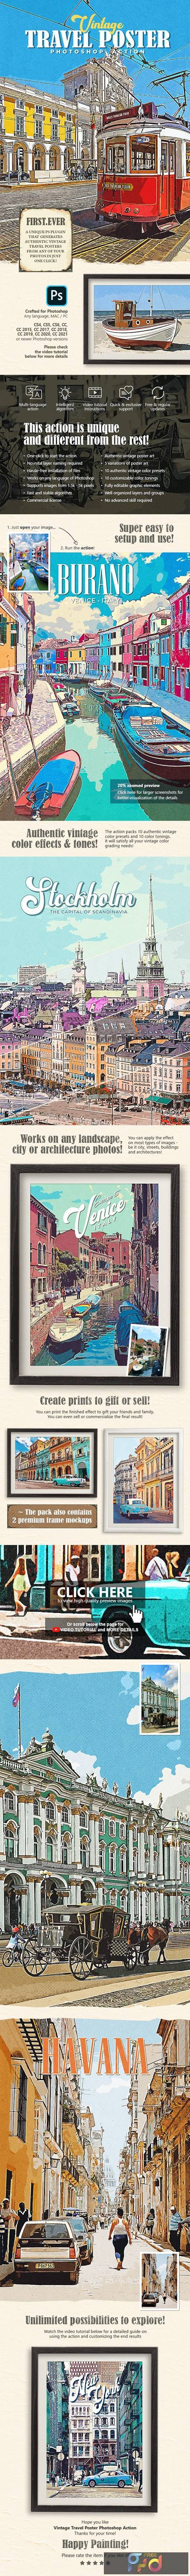 Vintage Travel Poster Photoshop Action 29146736 1